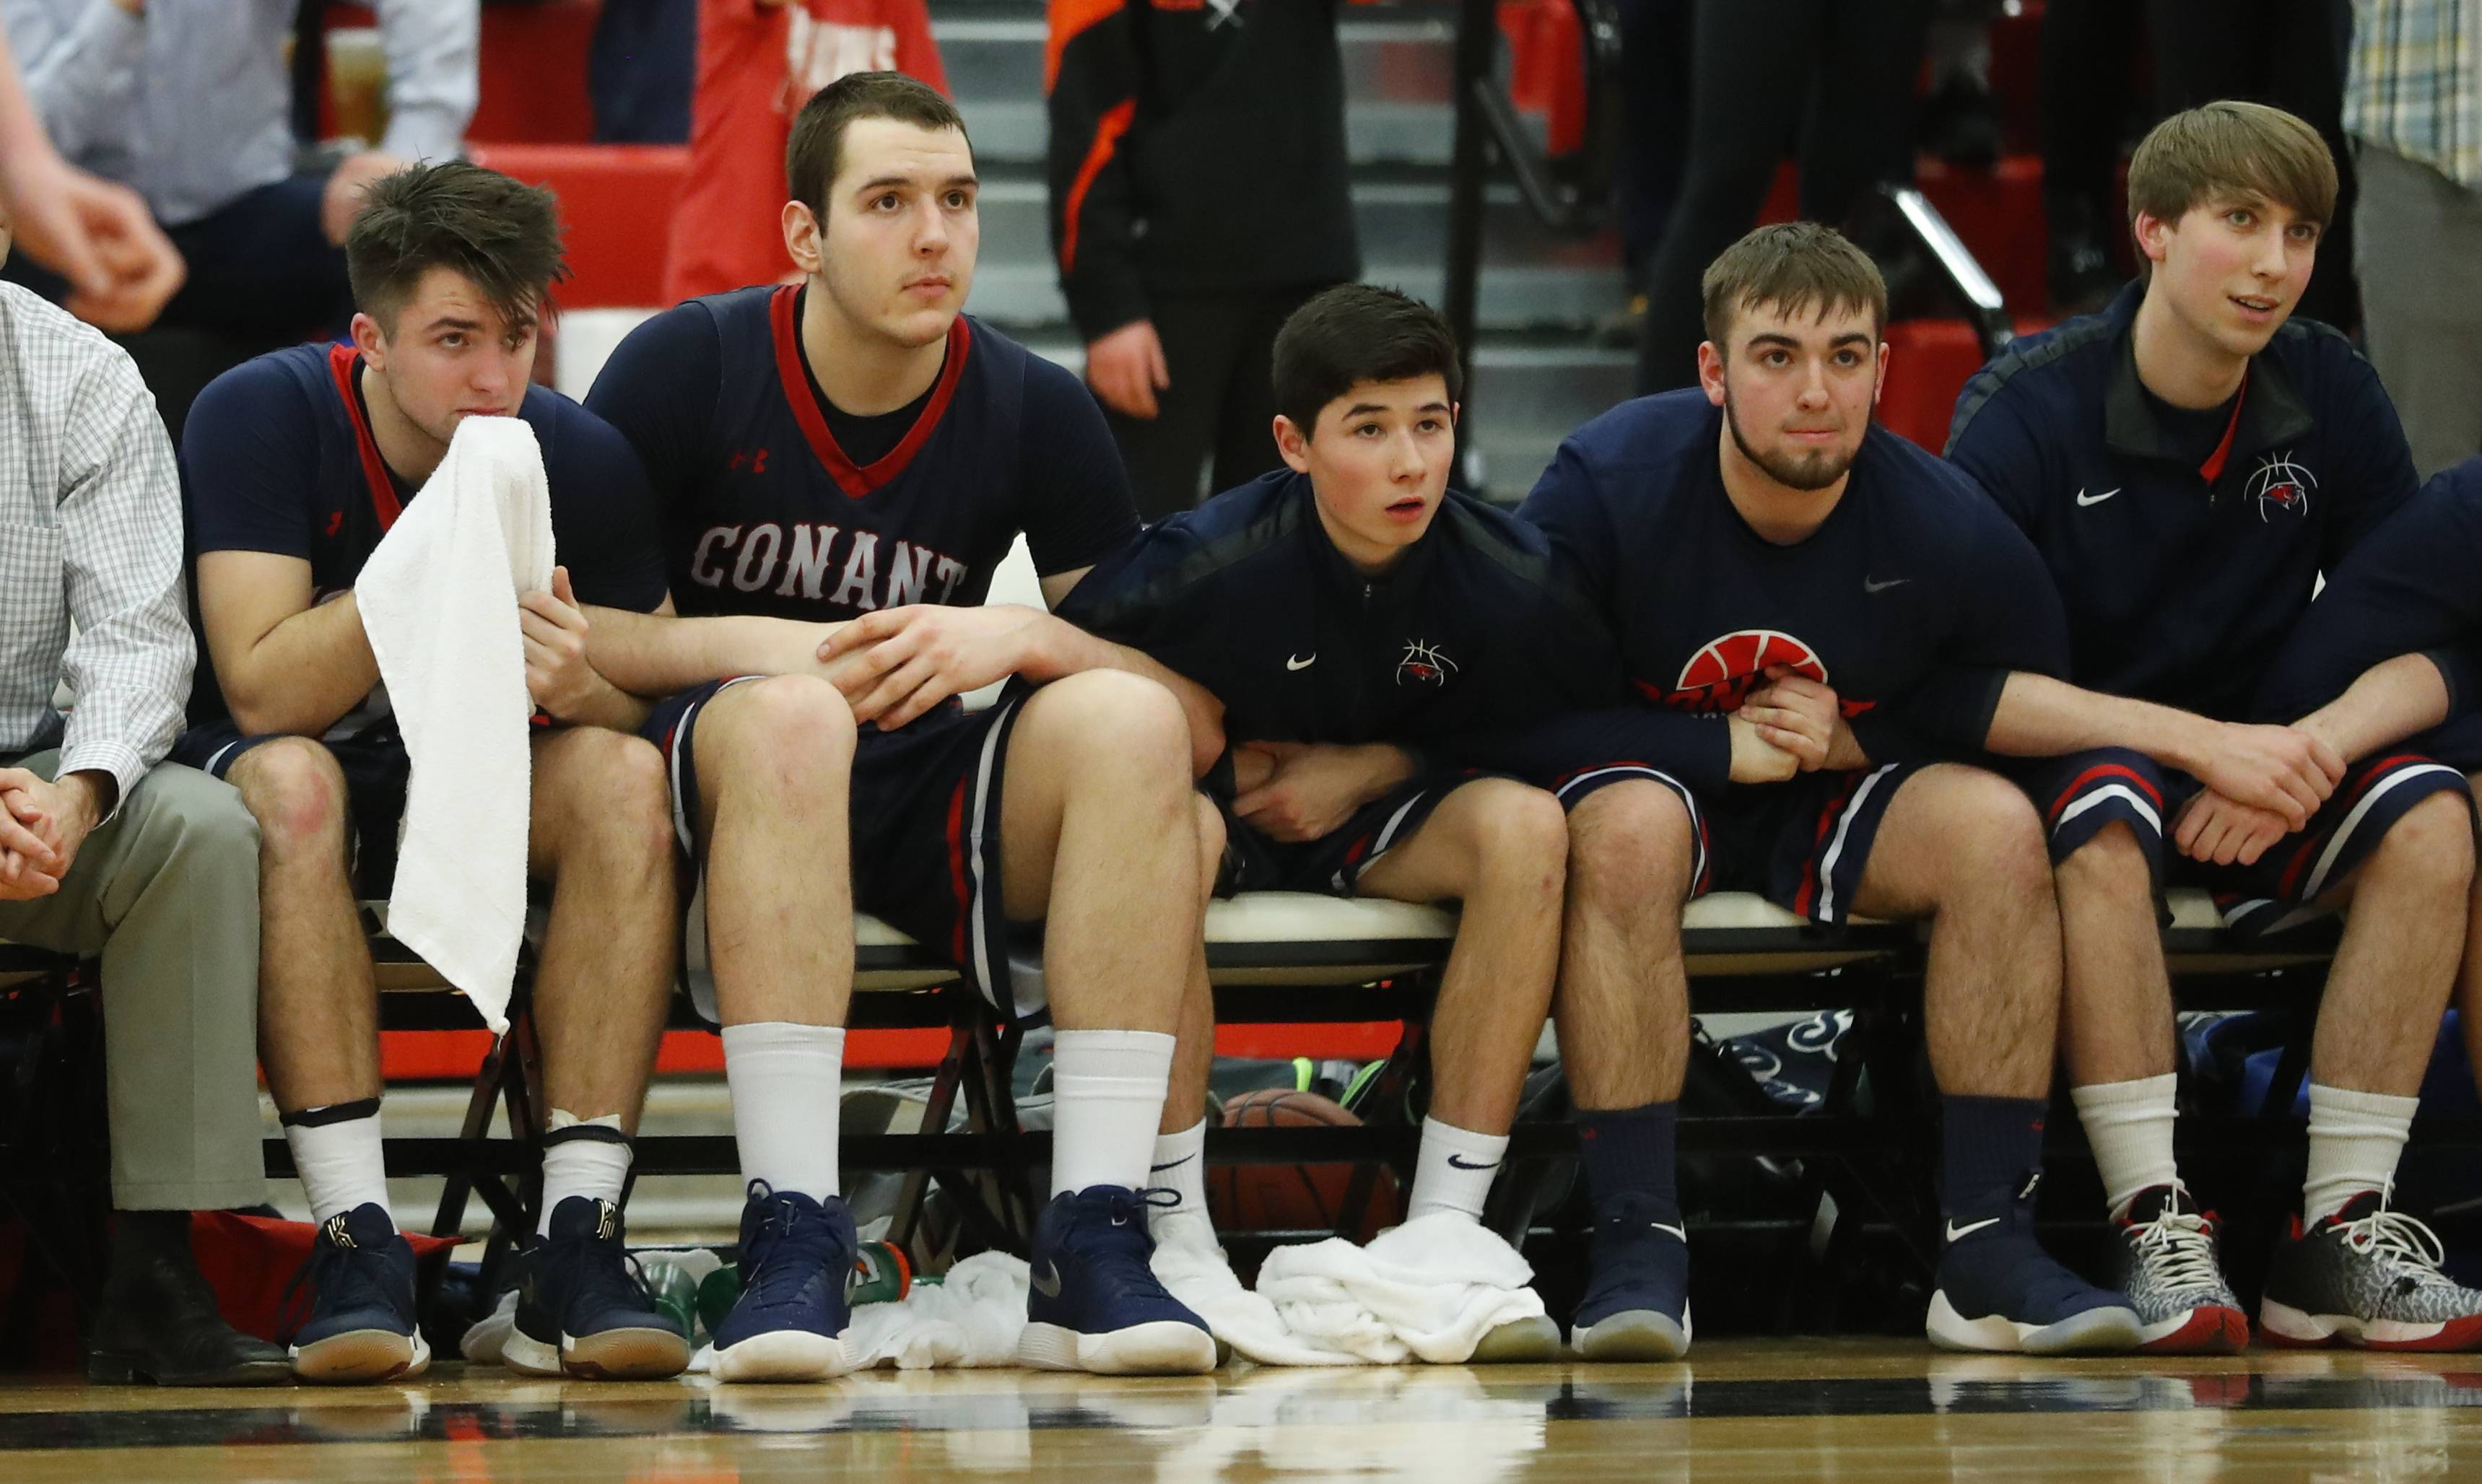 Conant looks on with trepidation during Class 4A regional final play Friday at Deerfield.